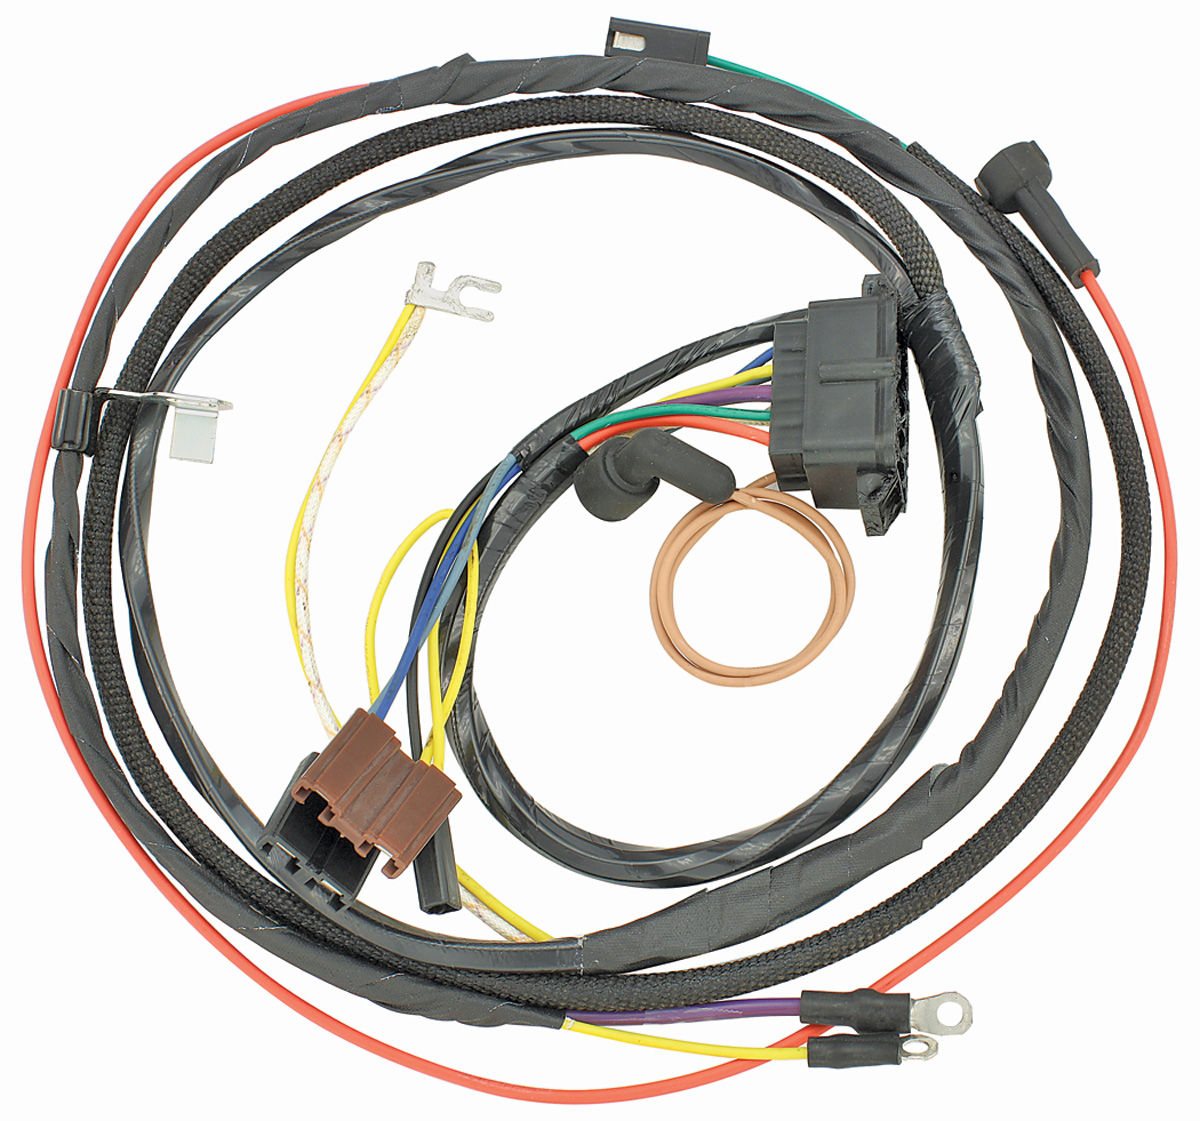 small resolution of 1967 chevelle wiring harness wiring diagram online 1969 chevelle wiring harness 1967 chevelle wiring harness